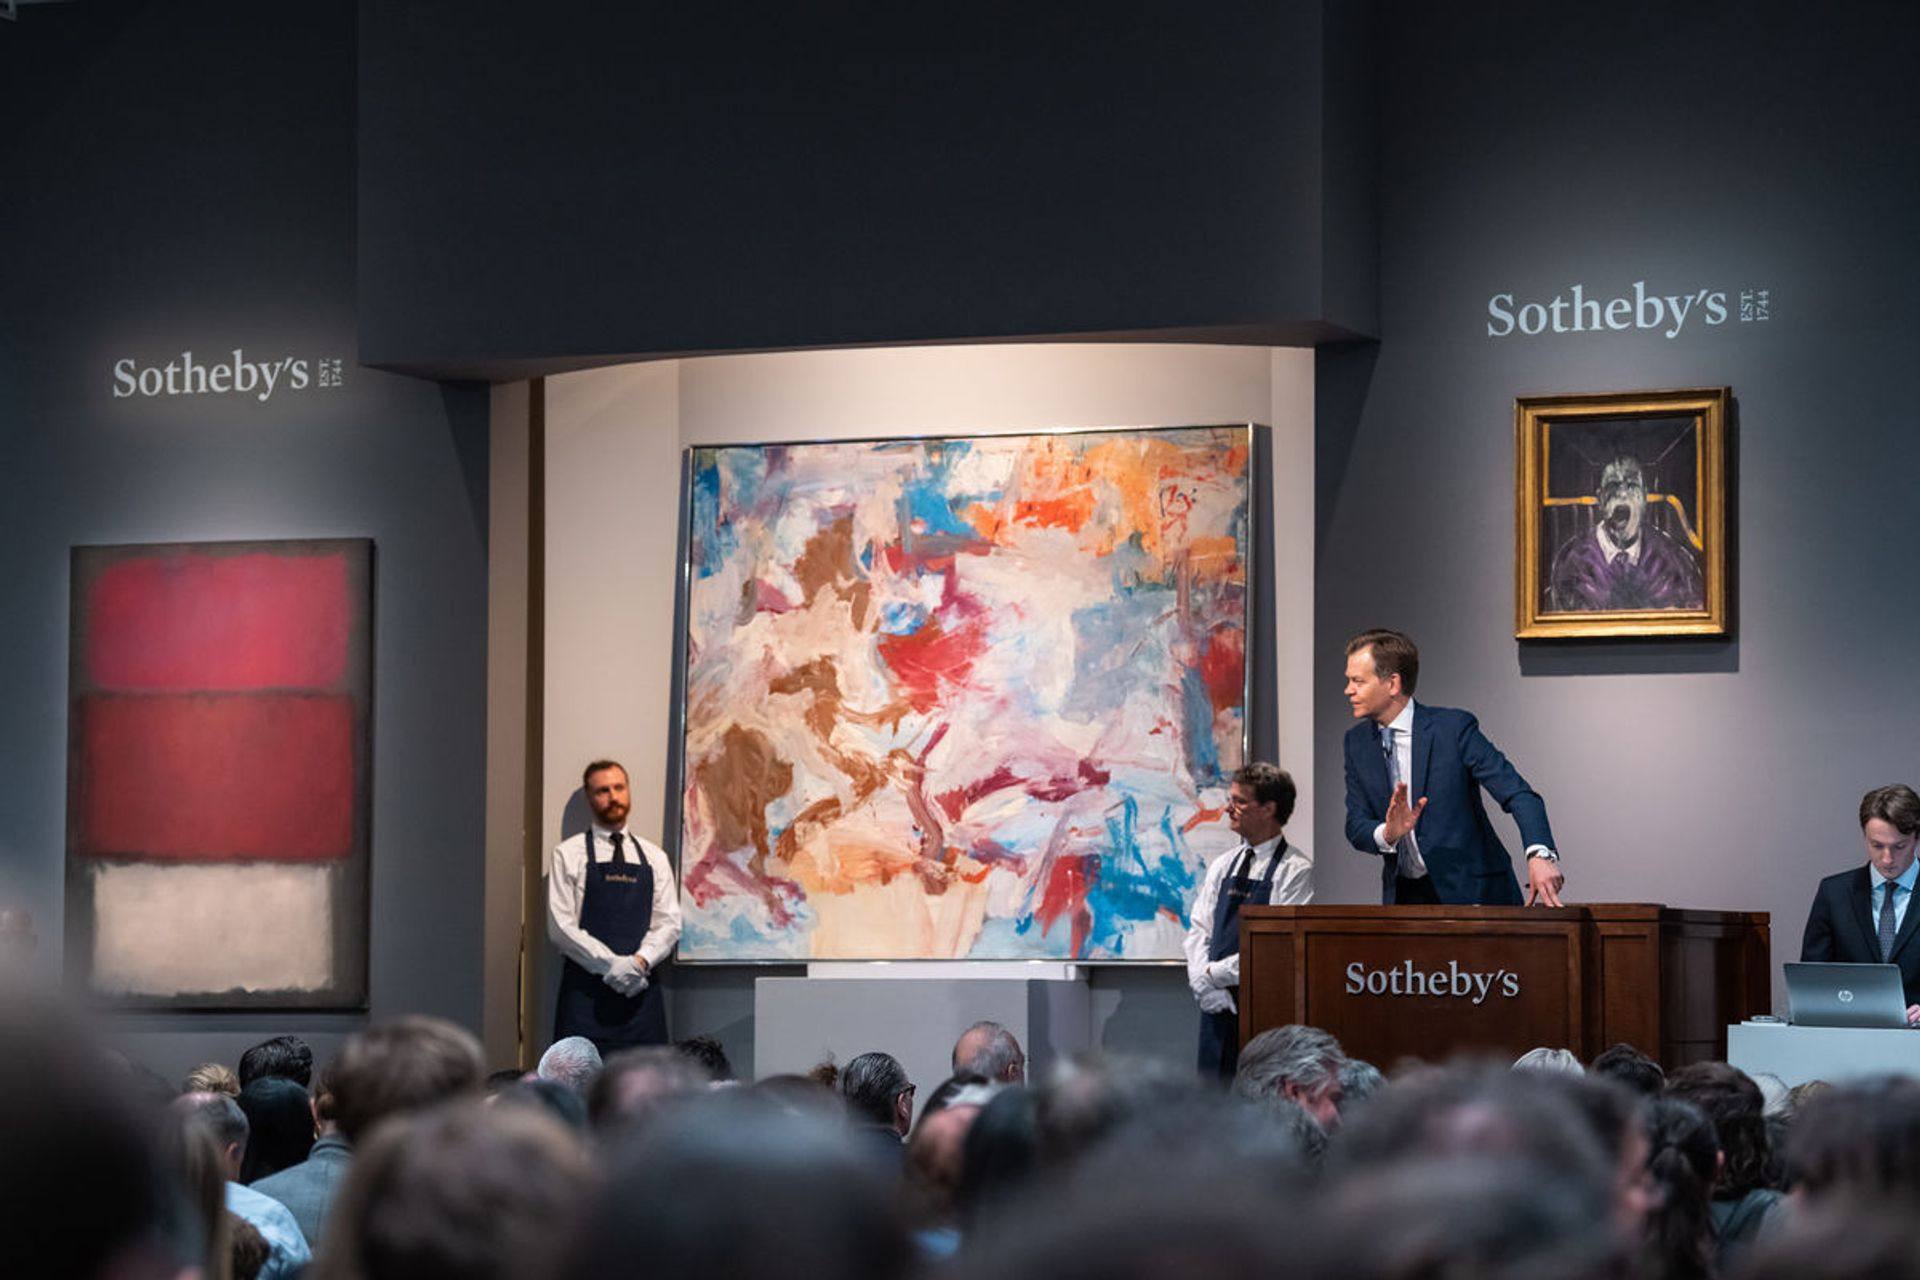 Mark Rothko's Untitled (1960) on the left here was deaccessioned by the San Francisco Museum of Modern Art in 2019 Courtesy of Sotheby's